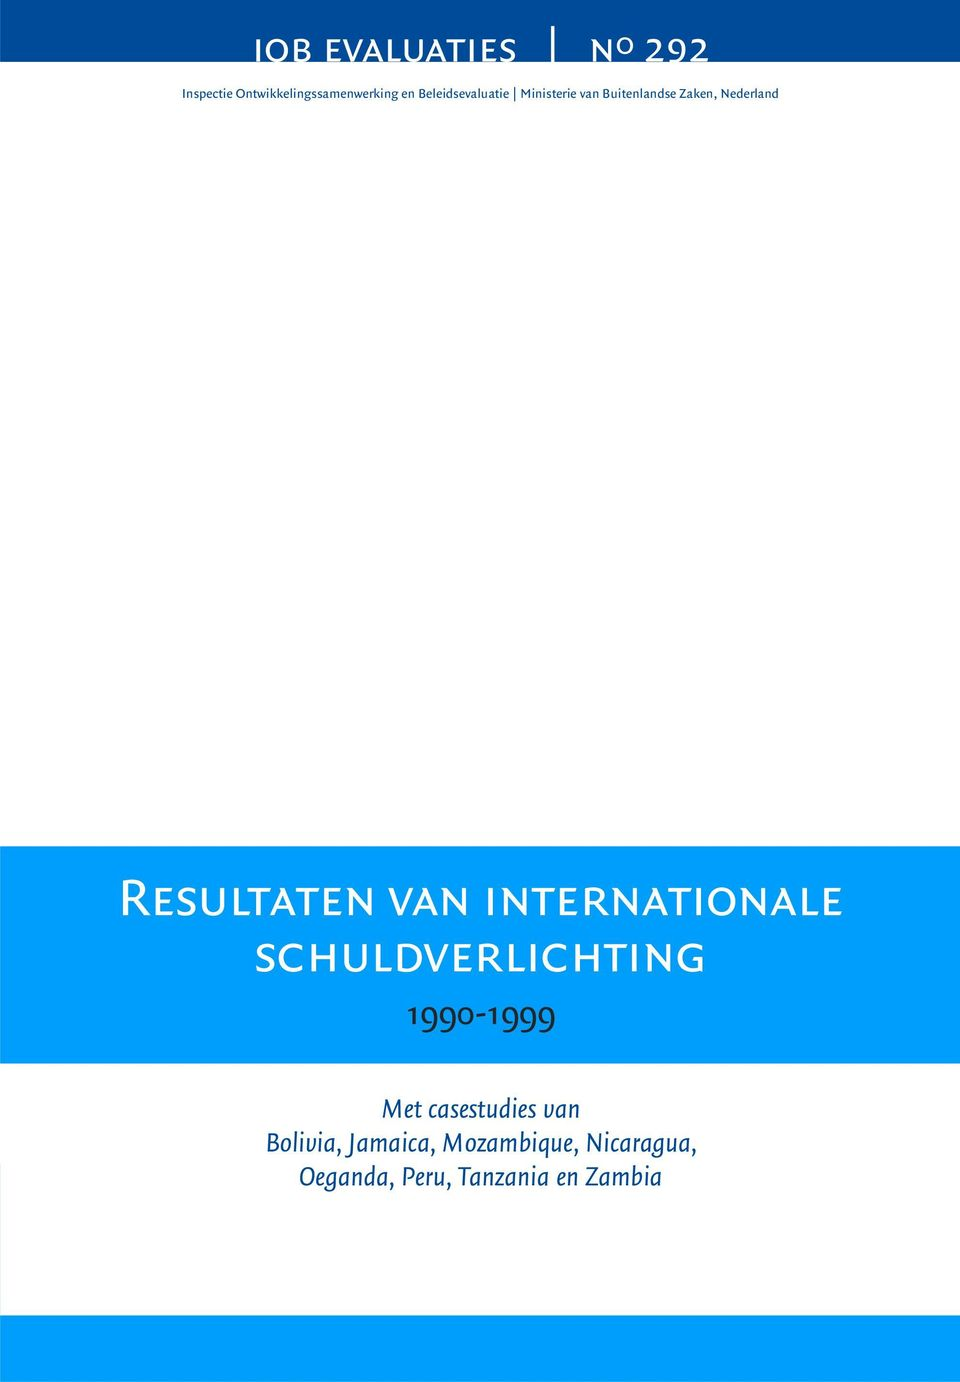 Resultaten van internationale schuldverlichting 1990-1999 Met